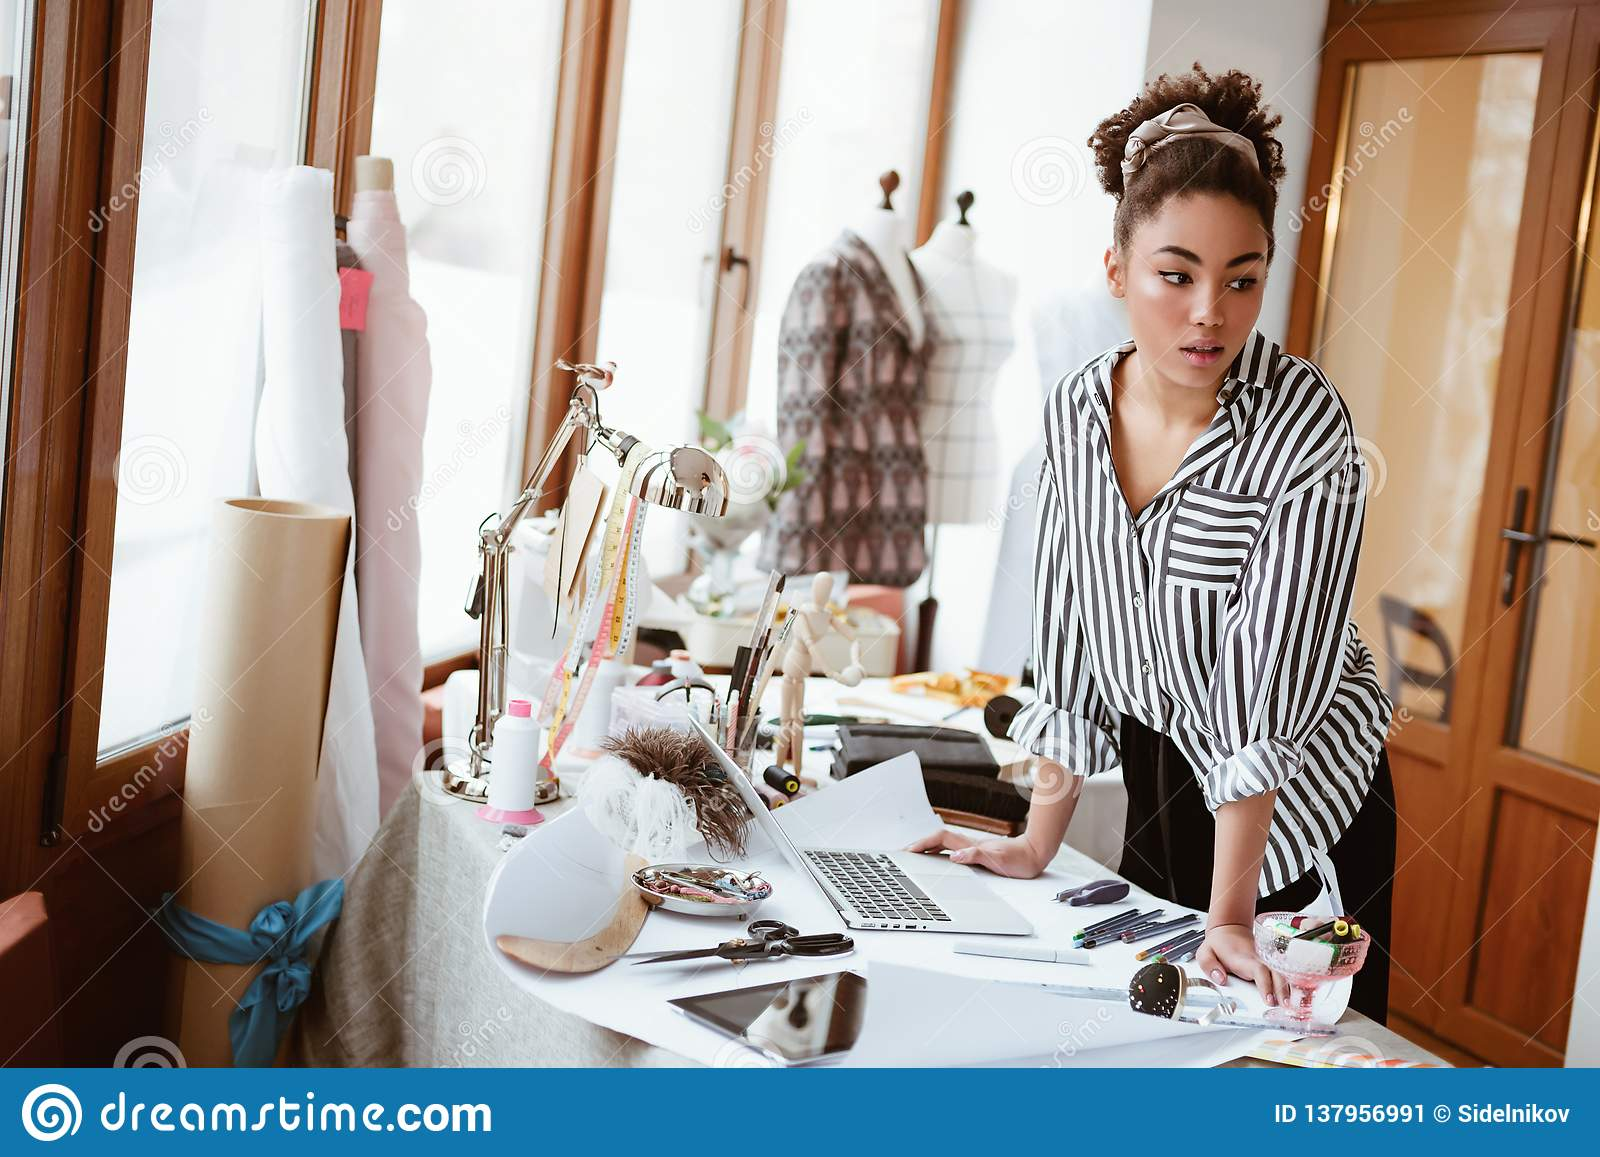 Young Fashion Designer At Workplace African Woman Looking To Someone Stock Image Image Of Portrait Business 137956991